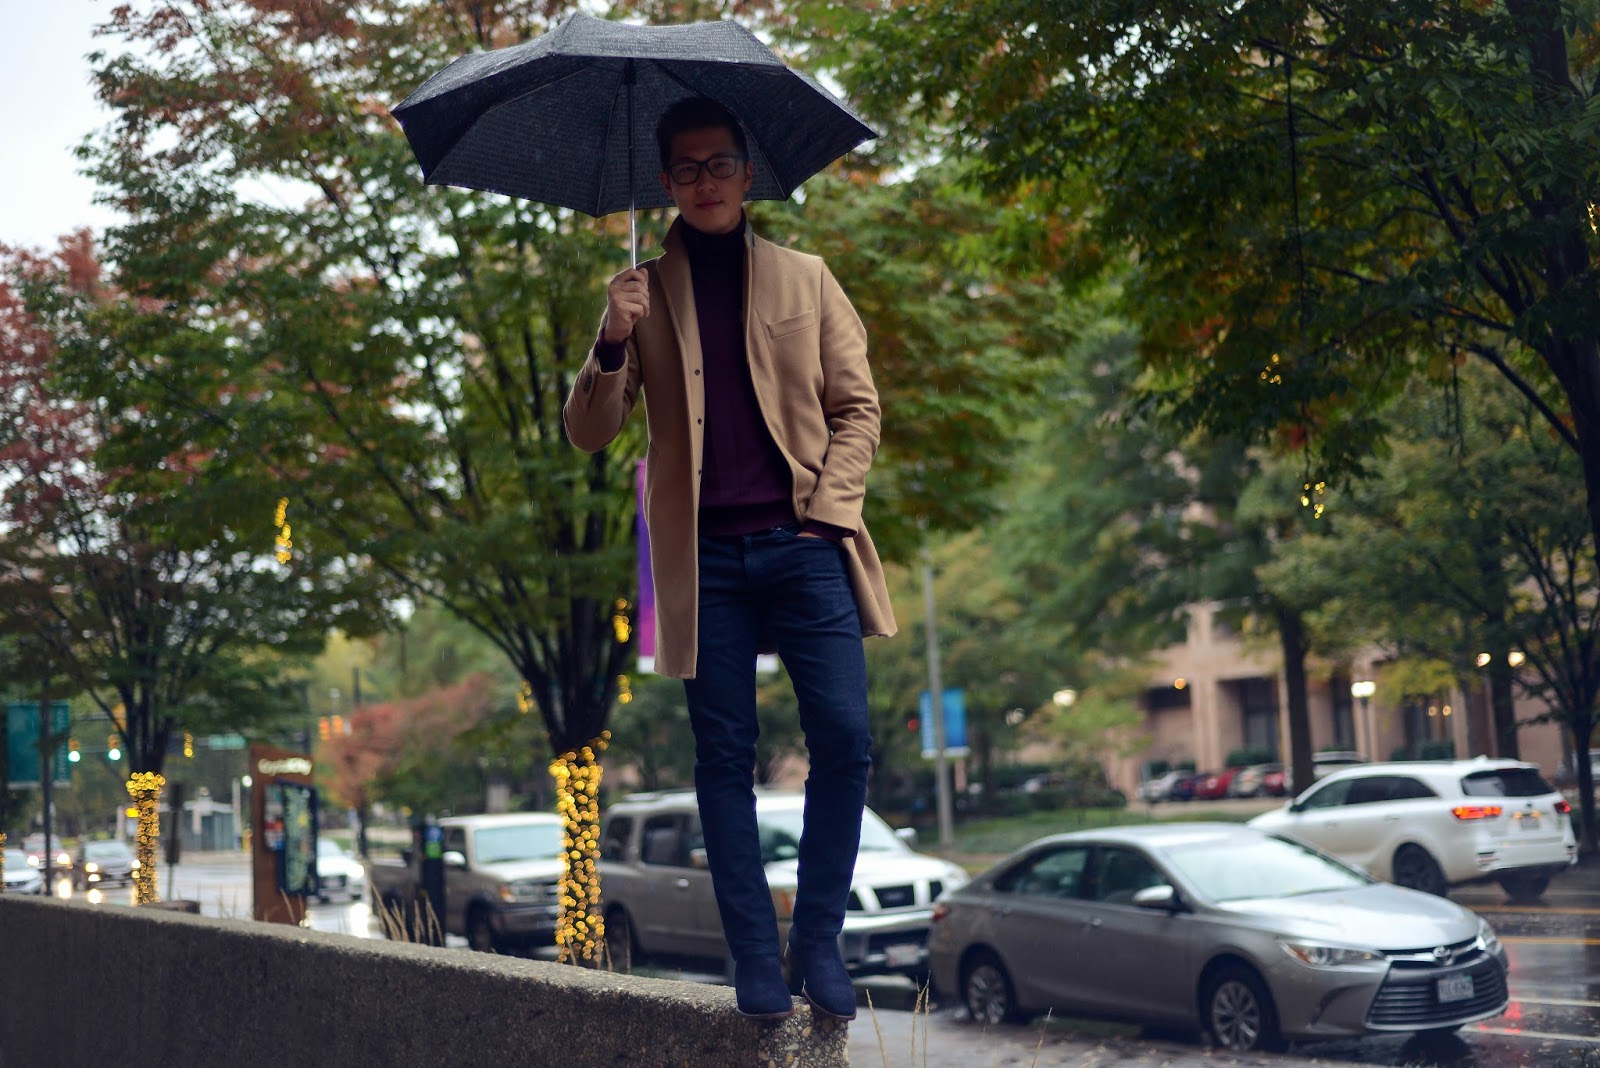 http://www.nxstyle.me/2017/11/rainy-fall.html